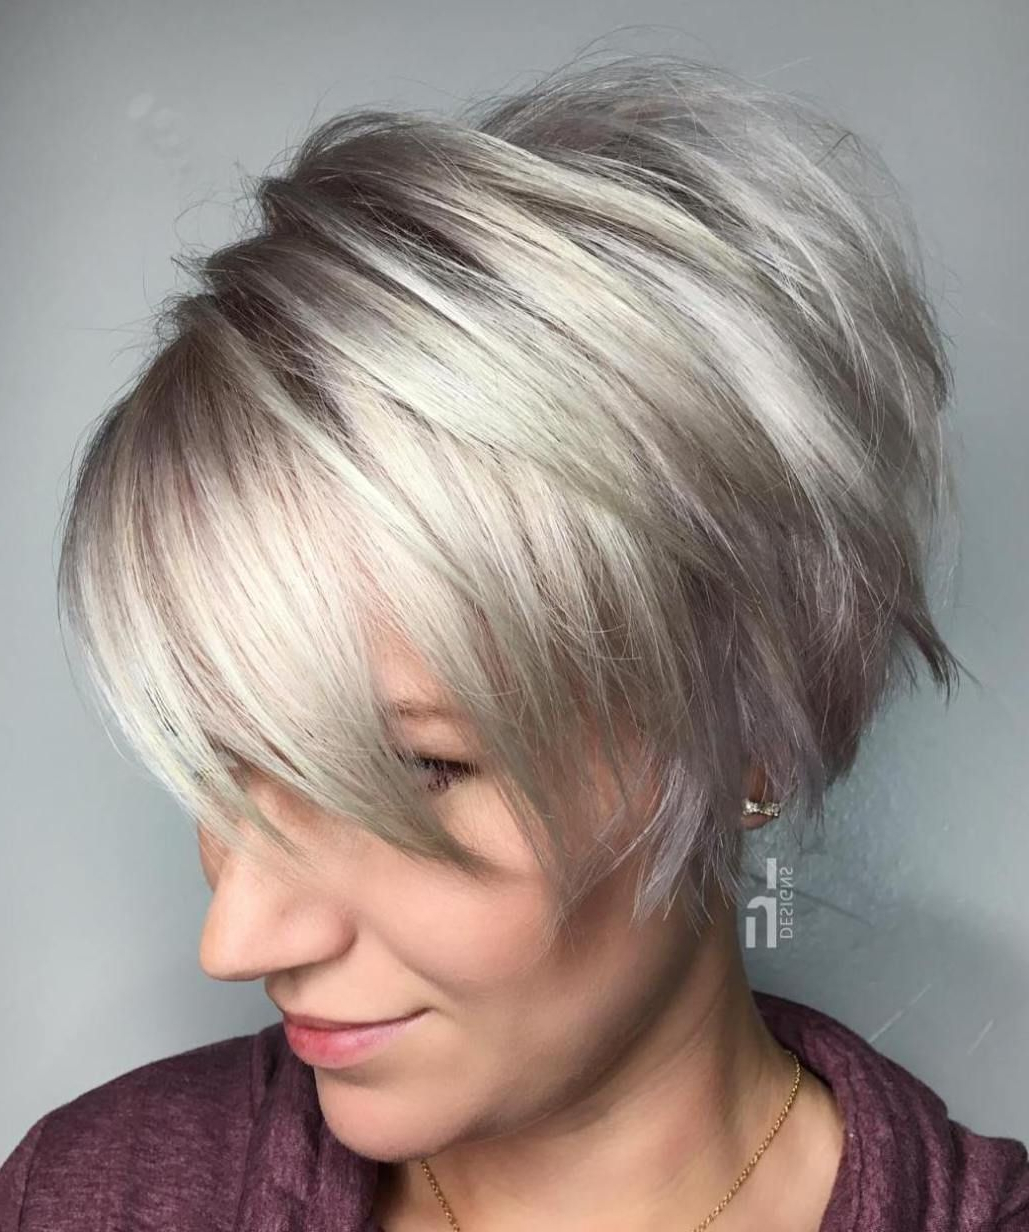 10 Best Hairstyles For Older Women Over 50 In Voluminous Gray Pixie Haircuts (View 12 of 20)